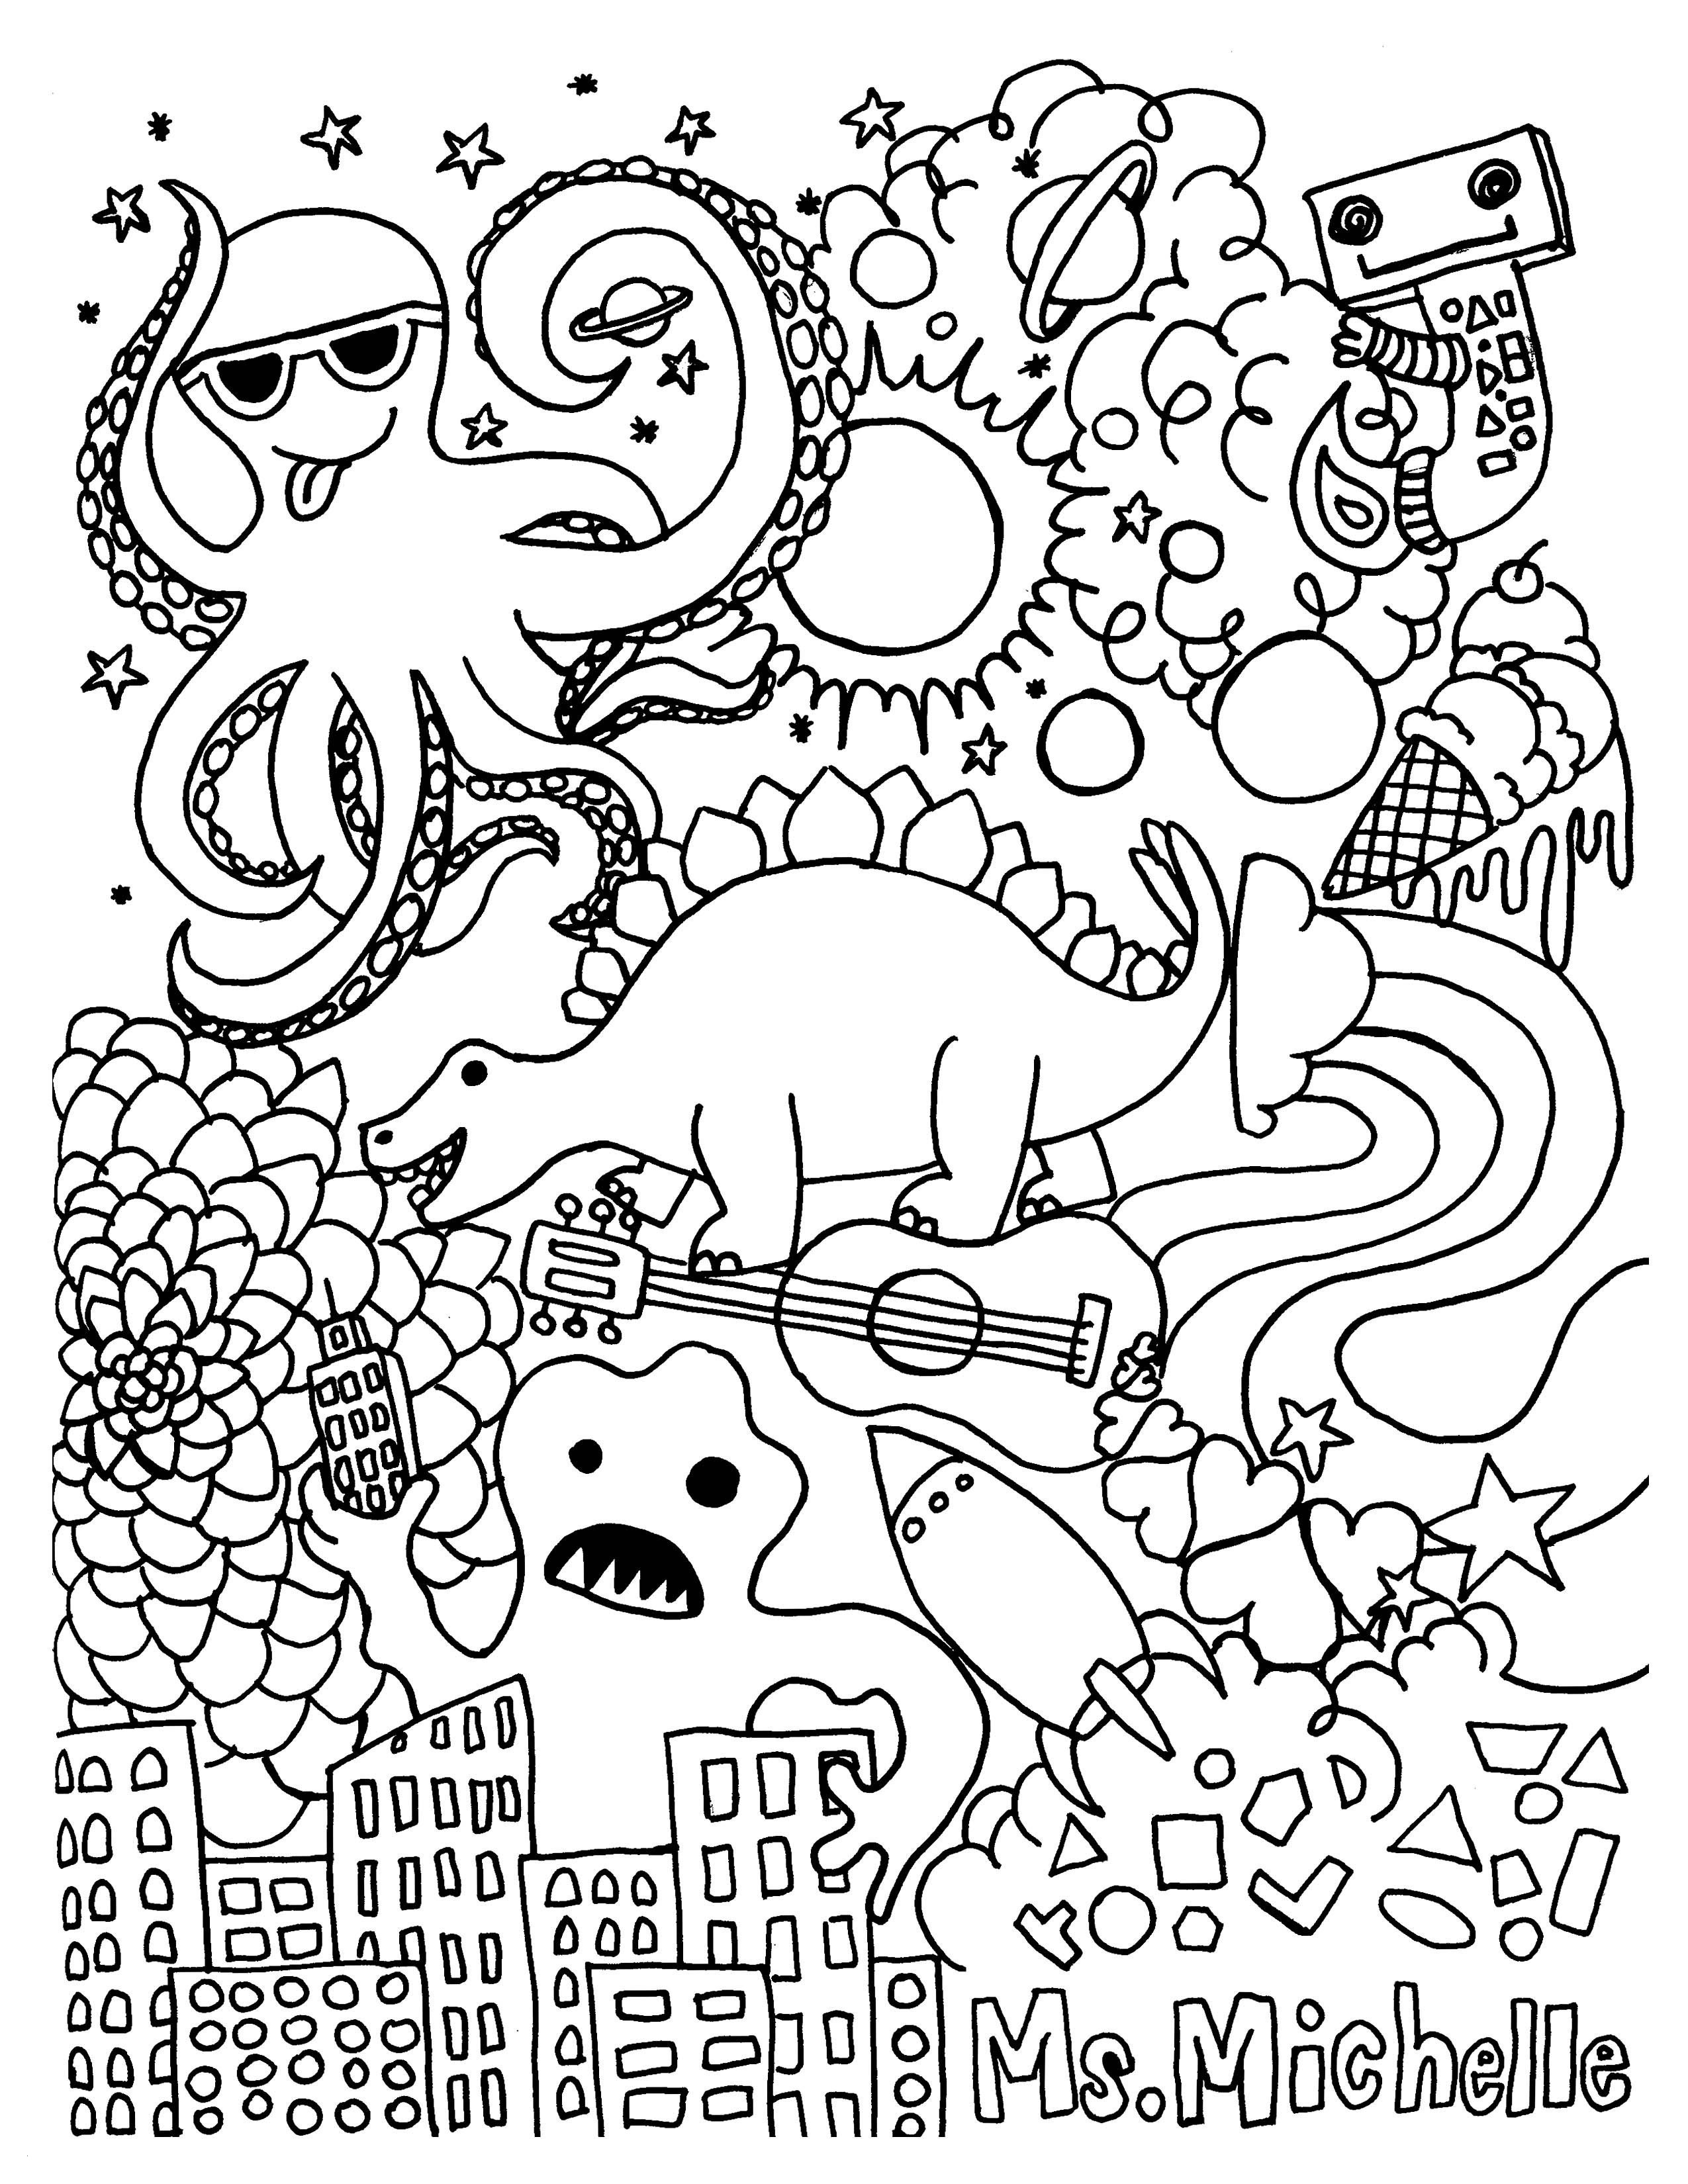 Disciples Coloring Pages Printable  Collection 11p - Free For Children